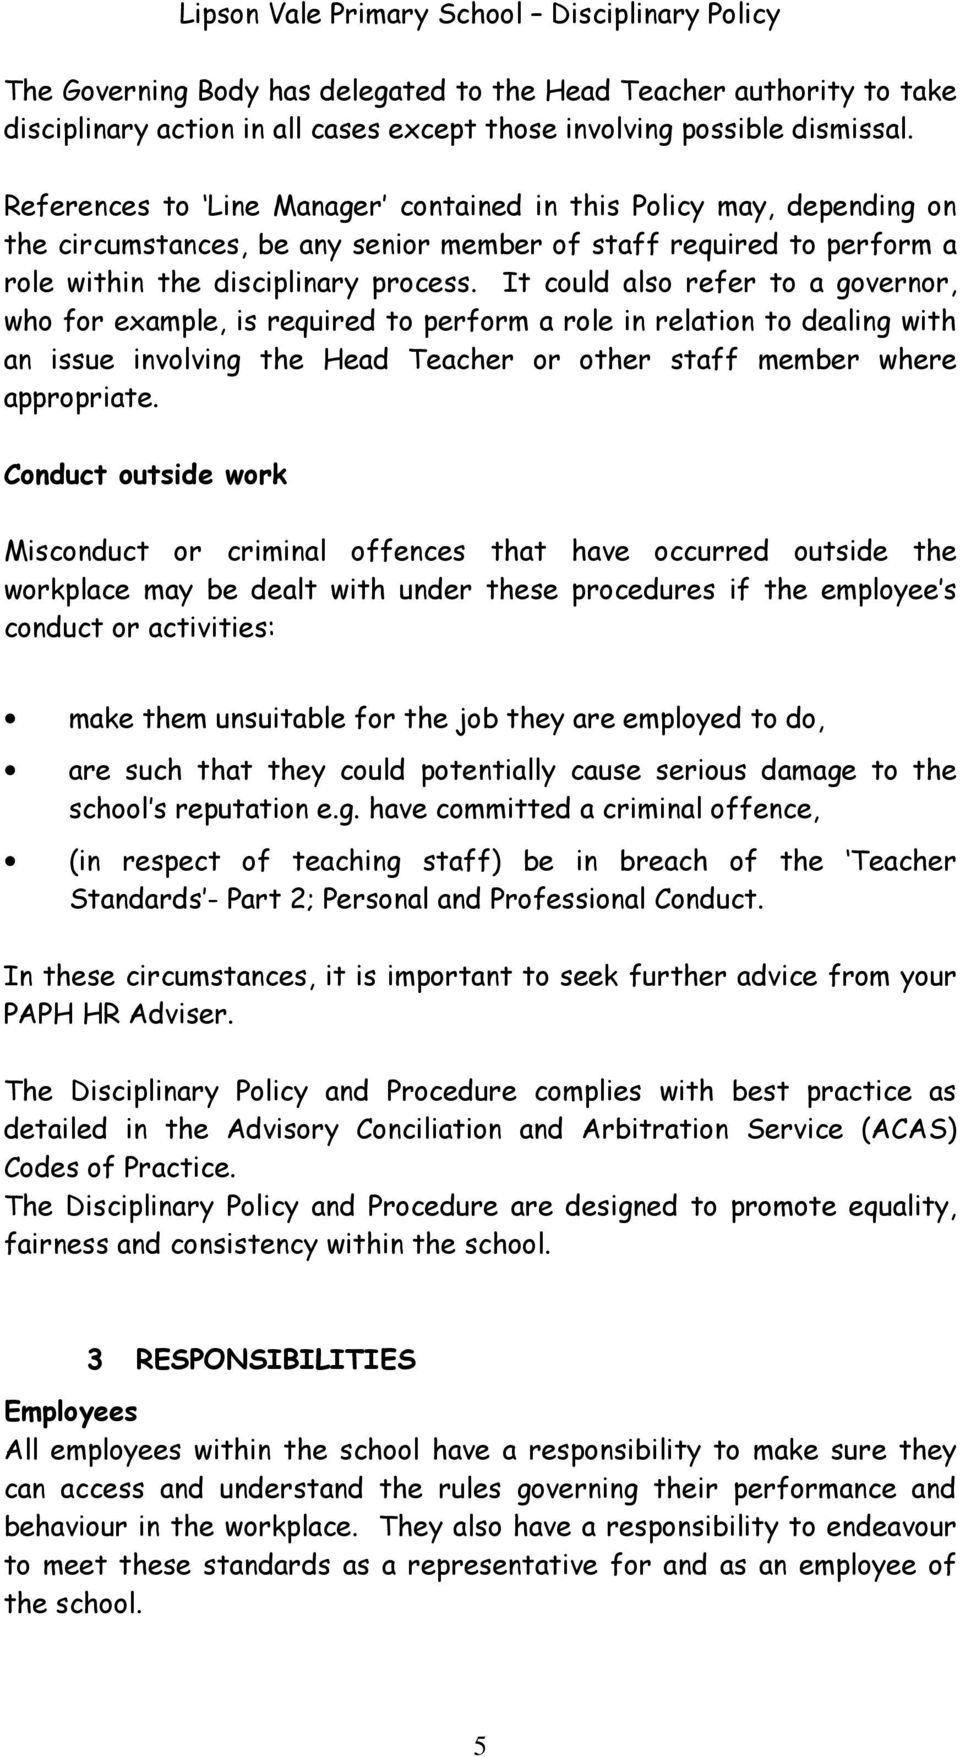 It could also refer to a governor, who for example, is required to perform a role in relation to dealing with an issue involving the Head Teacher or other staff member where appropriate.